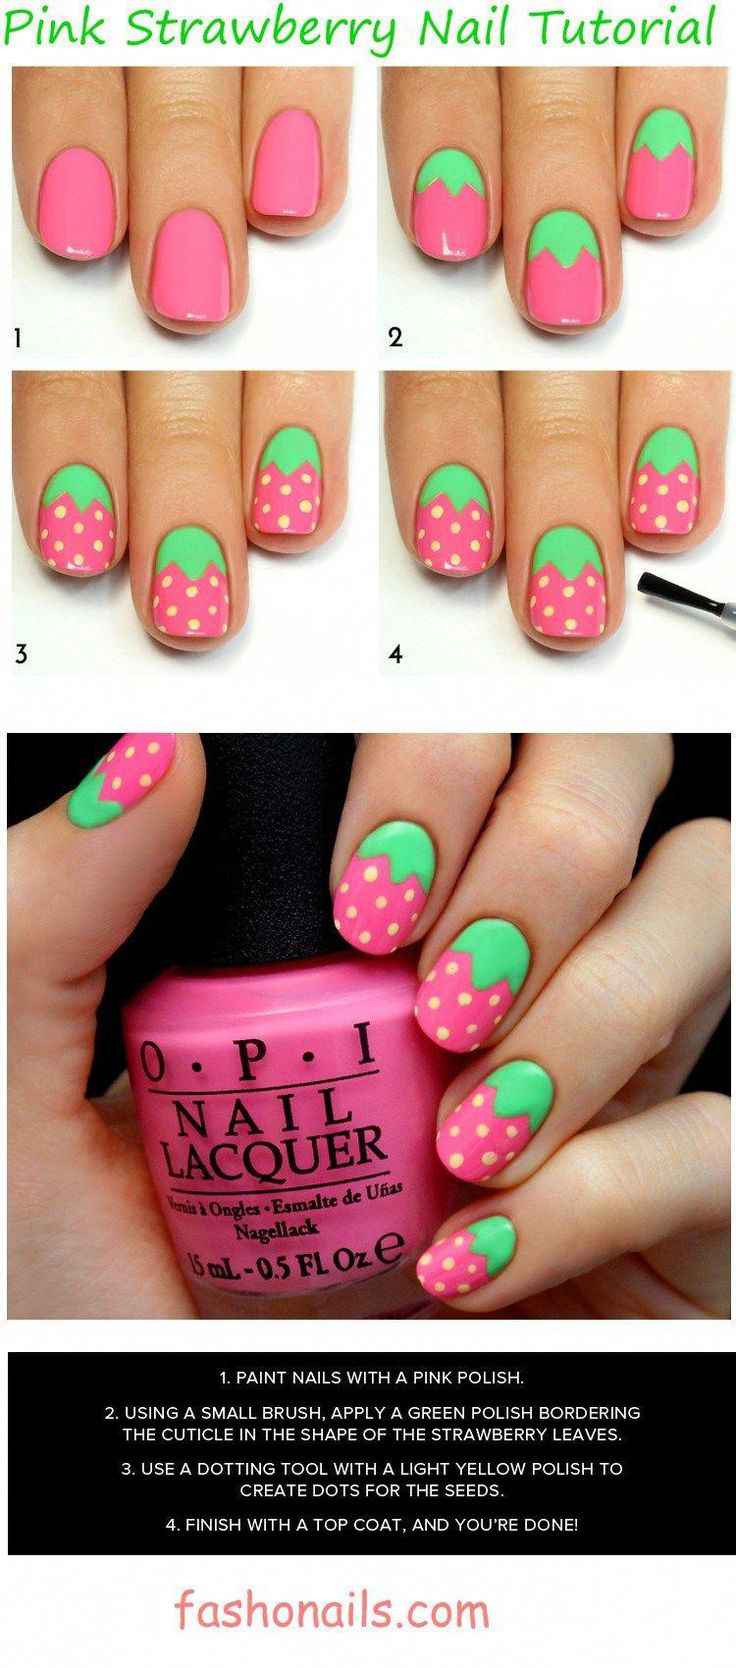 25+ Best and Easy Nail Art Designs for Beginners Amazing ...